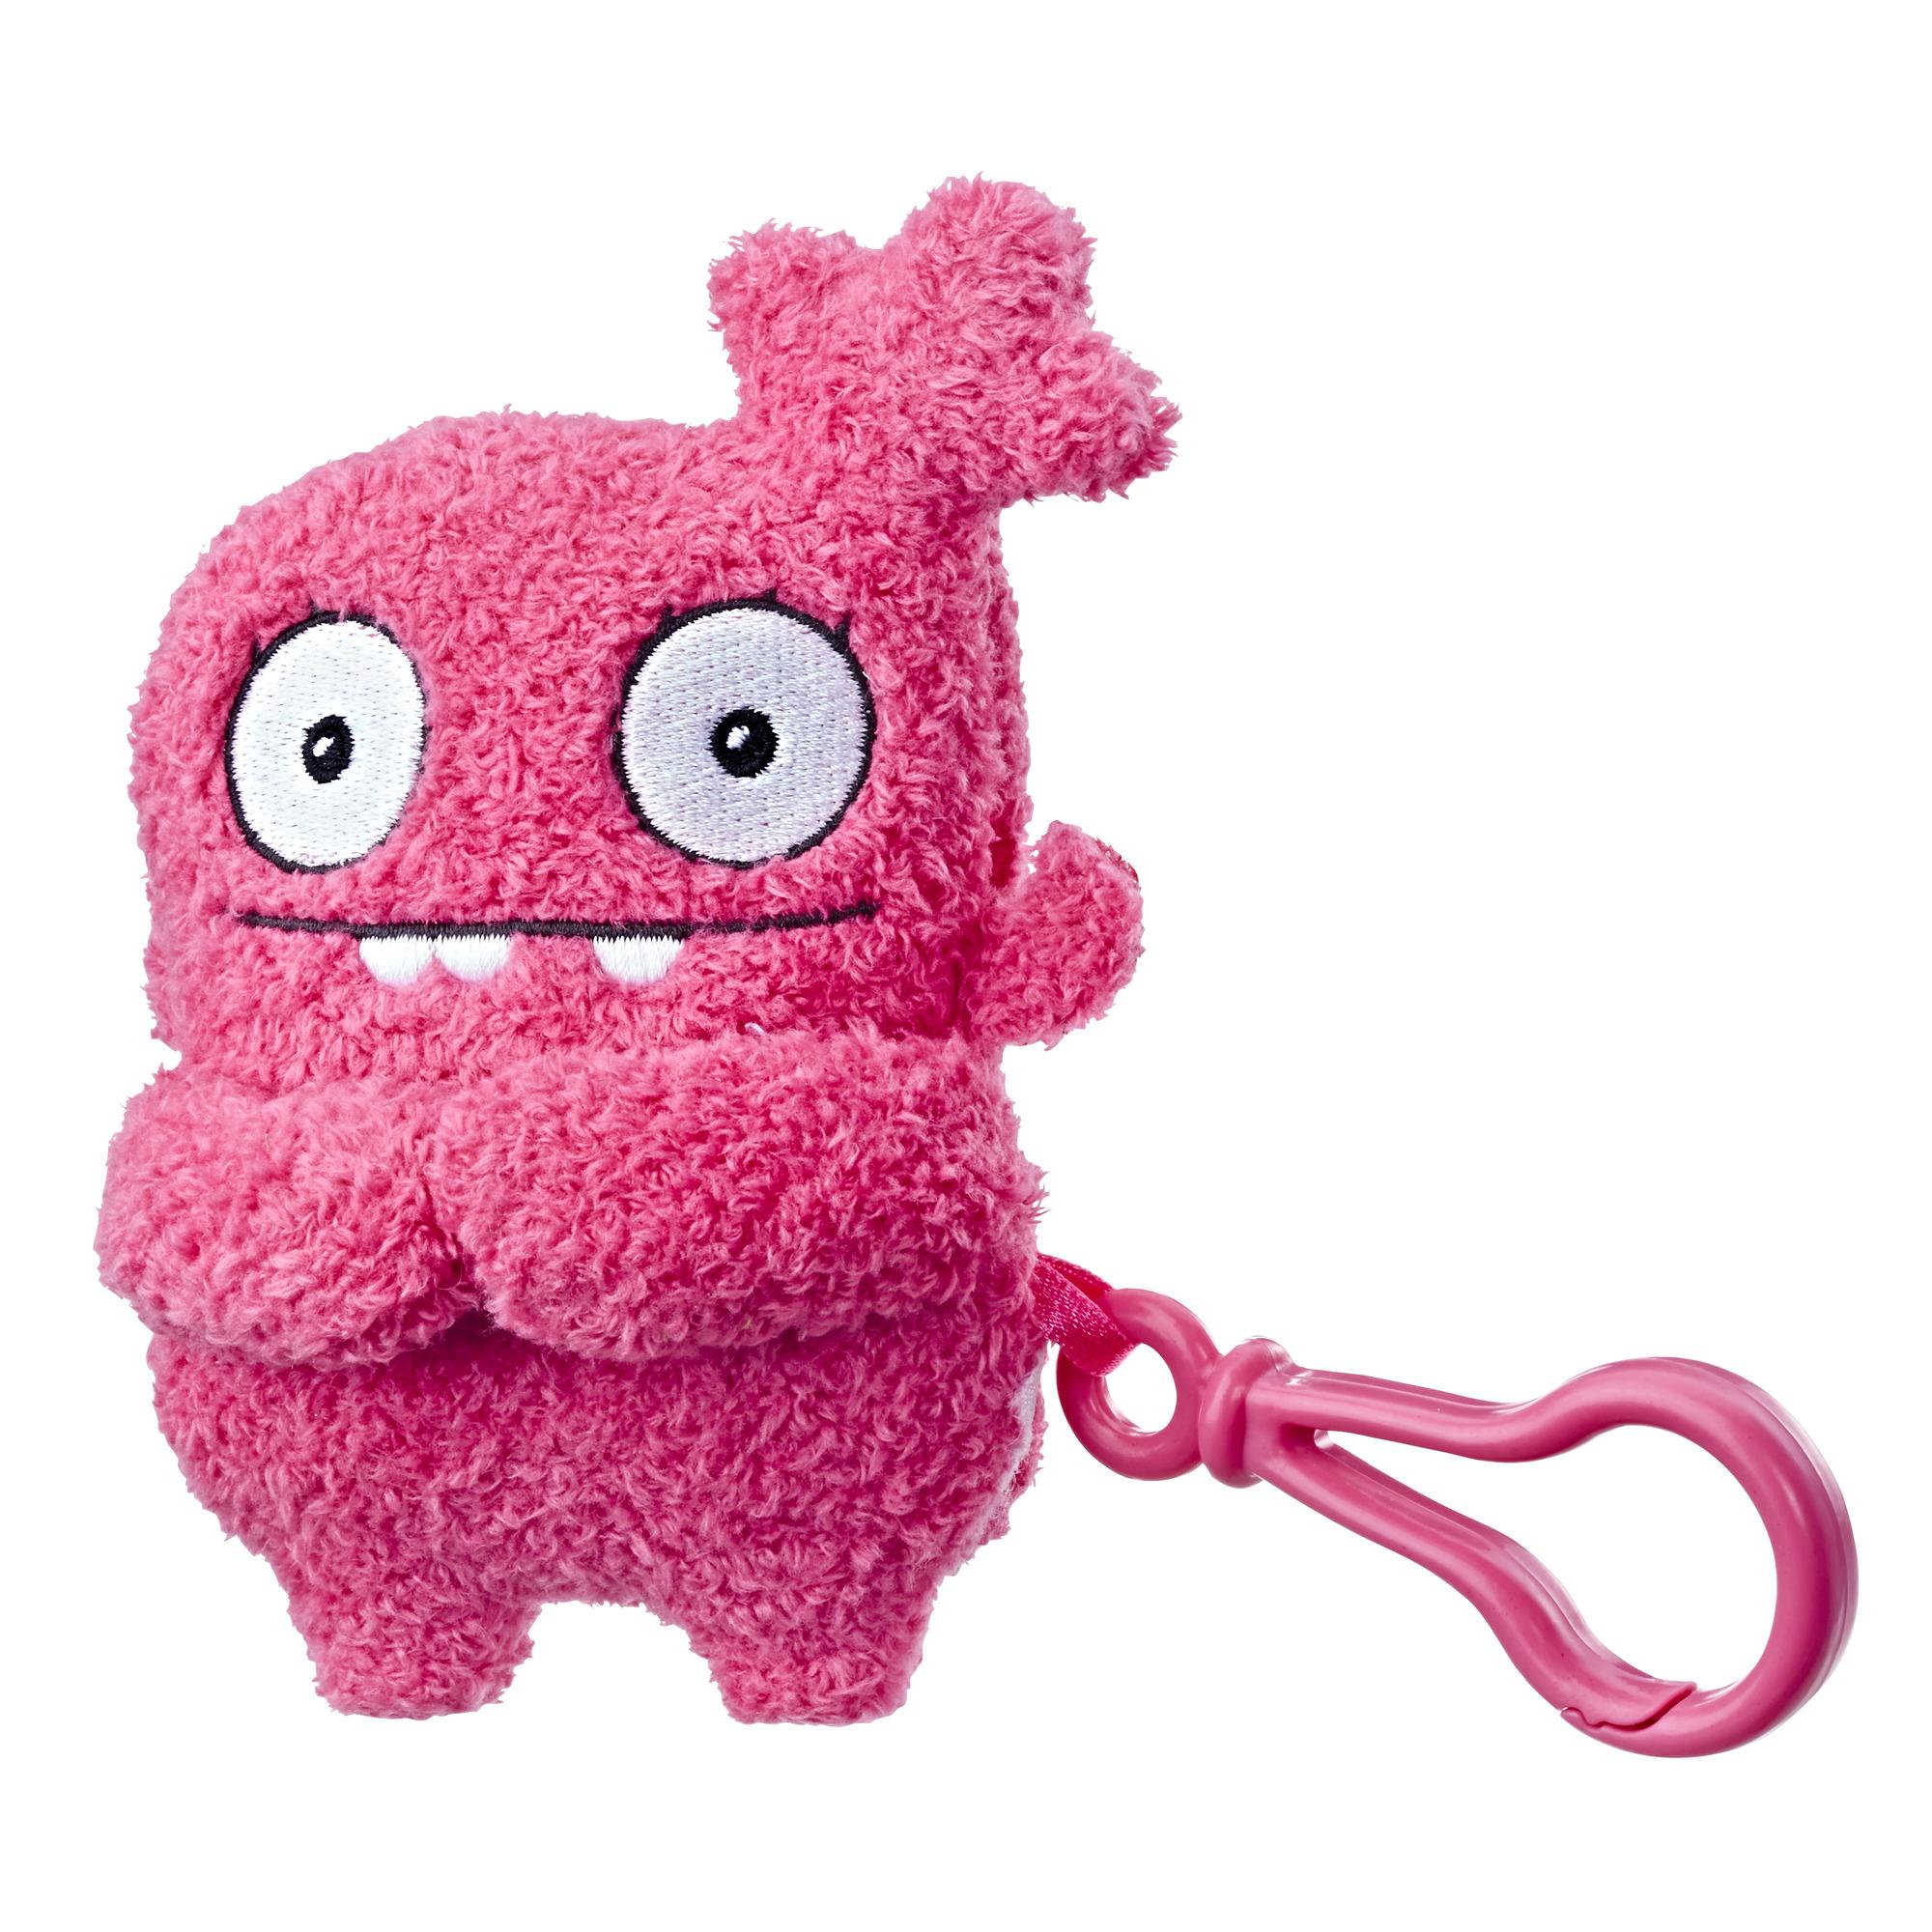 UglyDolls Moxy To-Go Stuffed Plush Toy, 5.5 inches tall